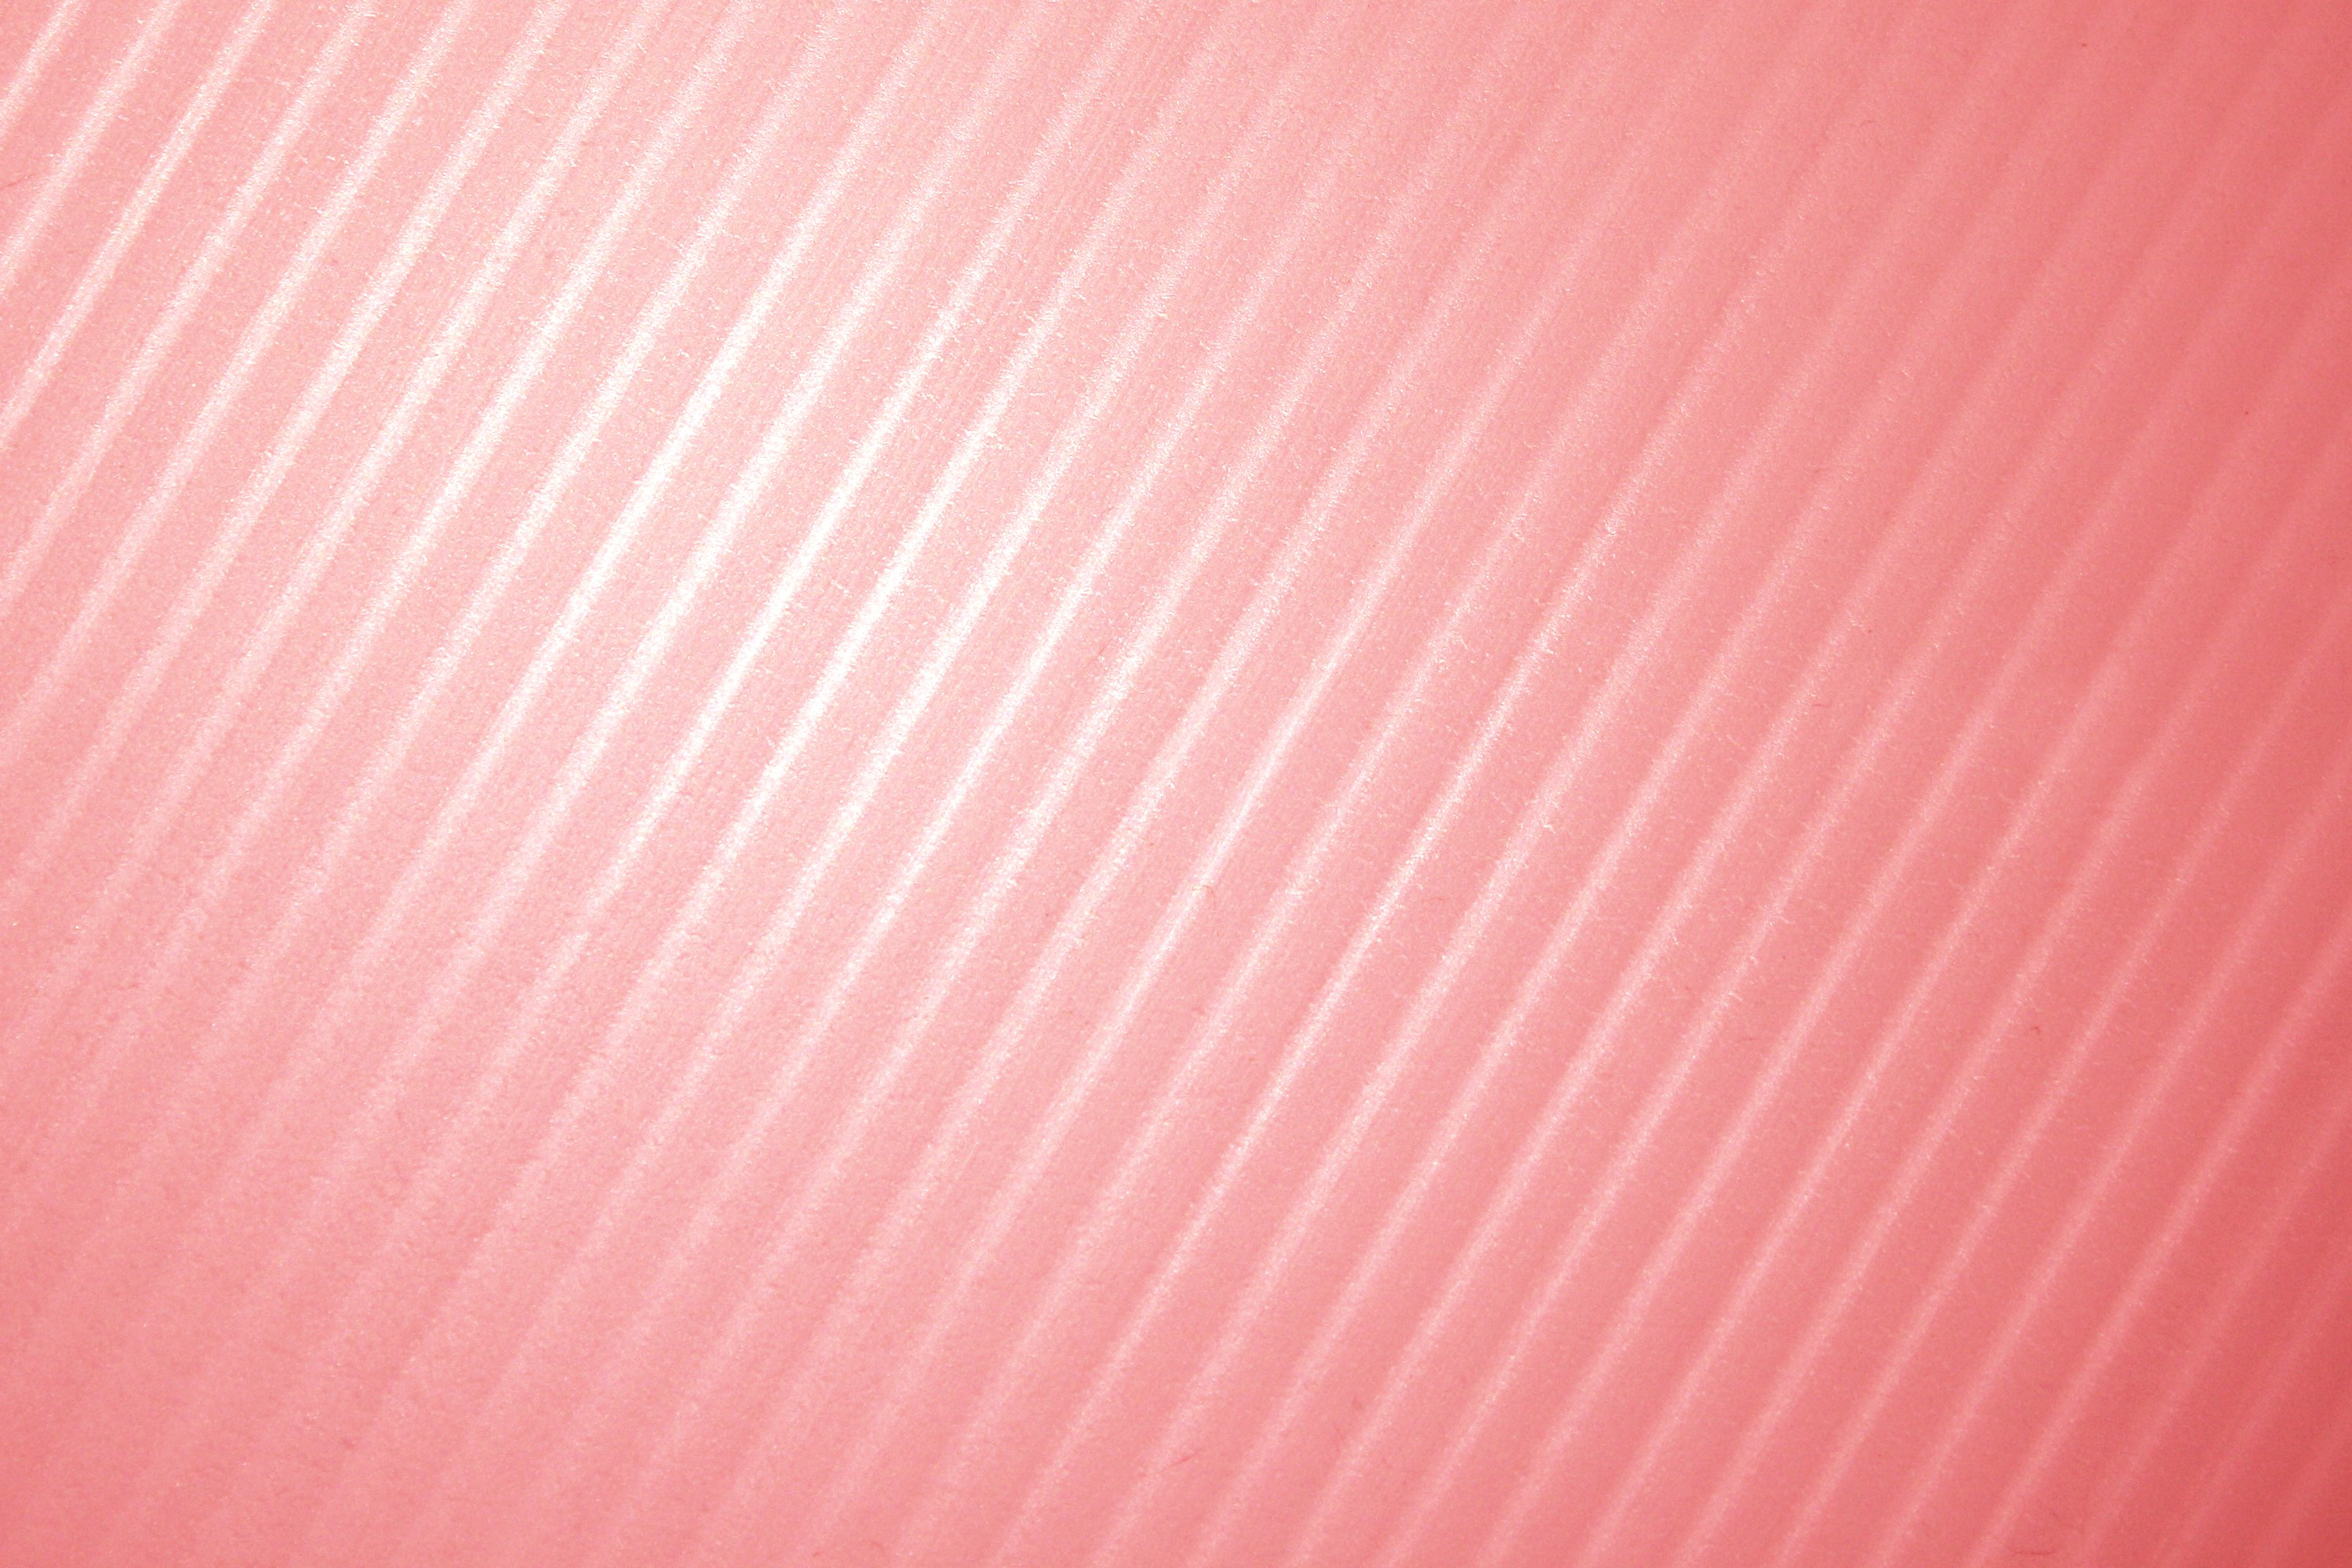 Light pink textured backgrounds